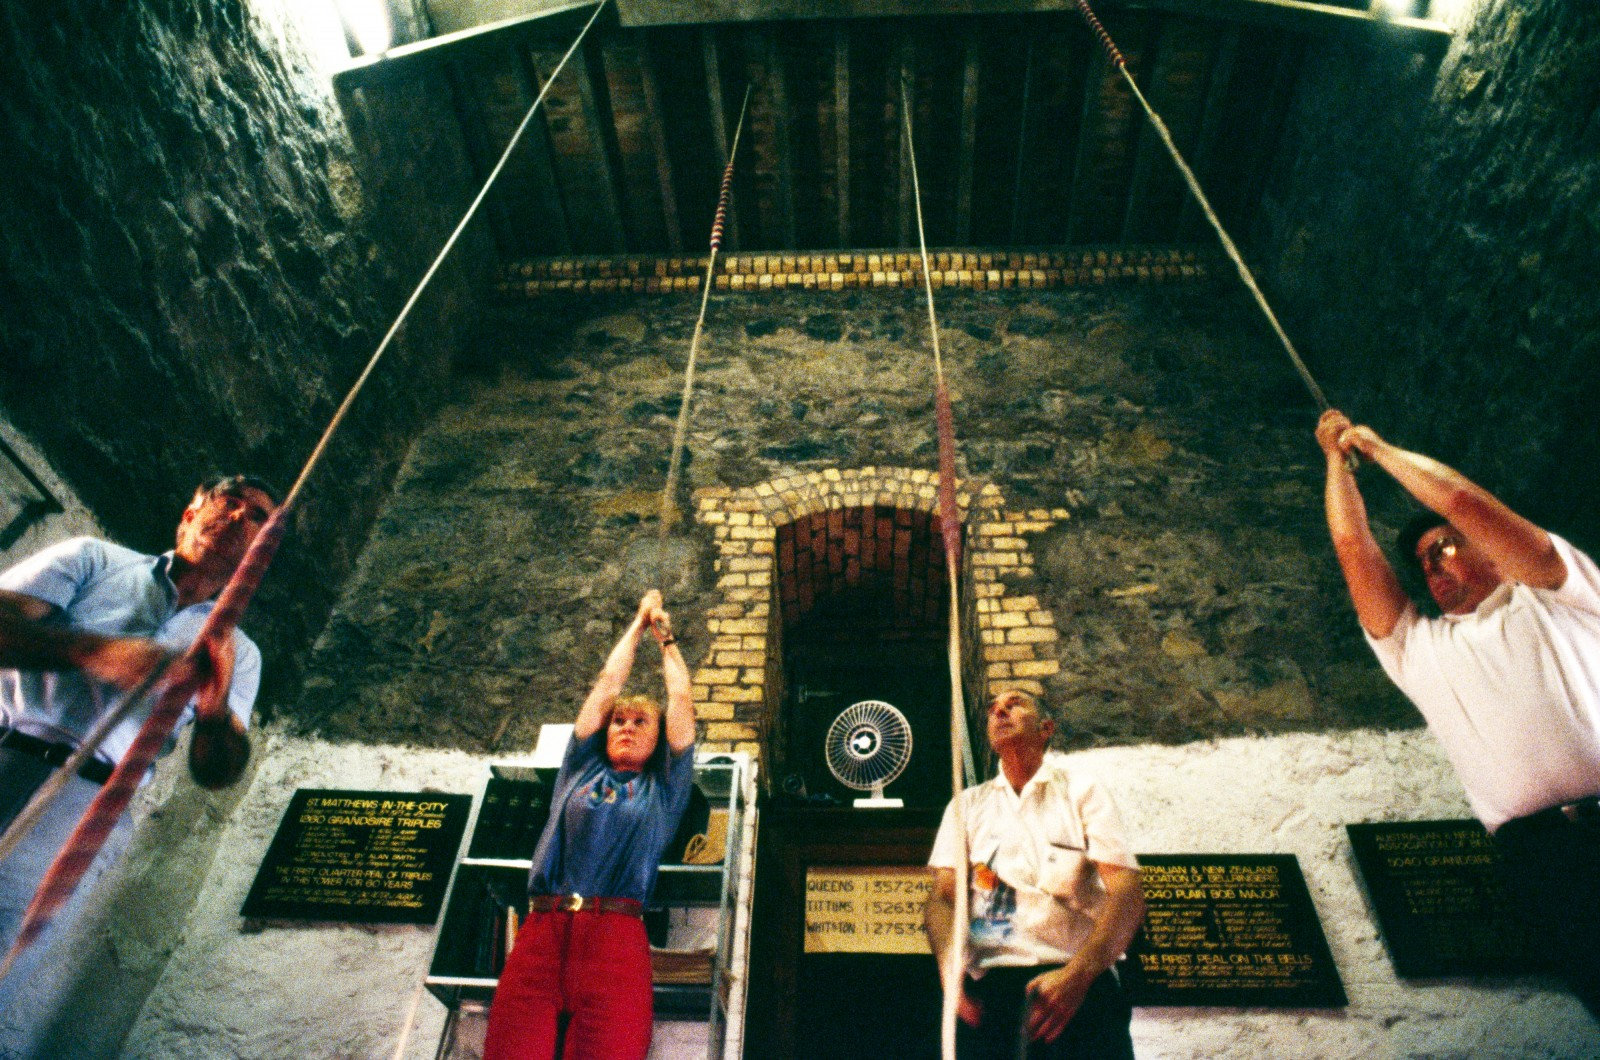 Plaques recording memorable peals hang on the walls of the St Matthew's ringing chamber, inspiring the ringers to greater efforts.